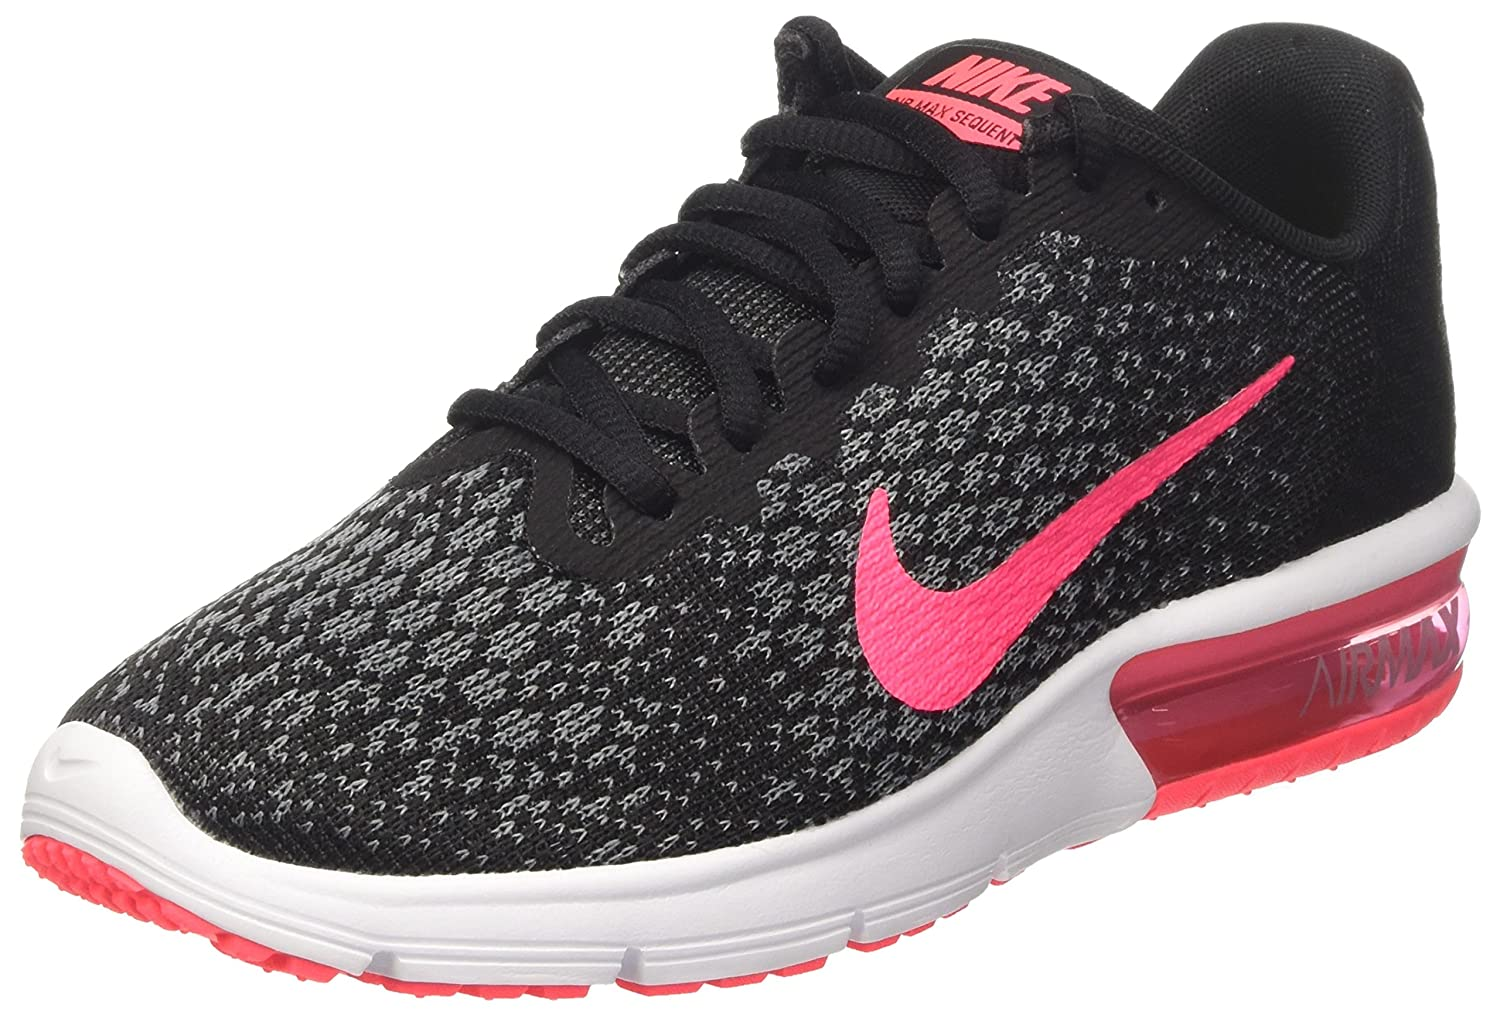 NIKE Men's Air Max B01K2LVF50 Sequent 2 Running Shoe B01K2LVF50 Max 7 B(M) US|Black/Racer Pink/Anthracite/Cool Grey 6f62d9